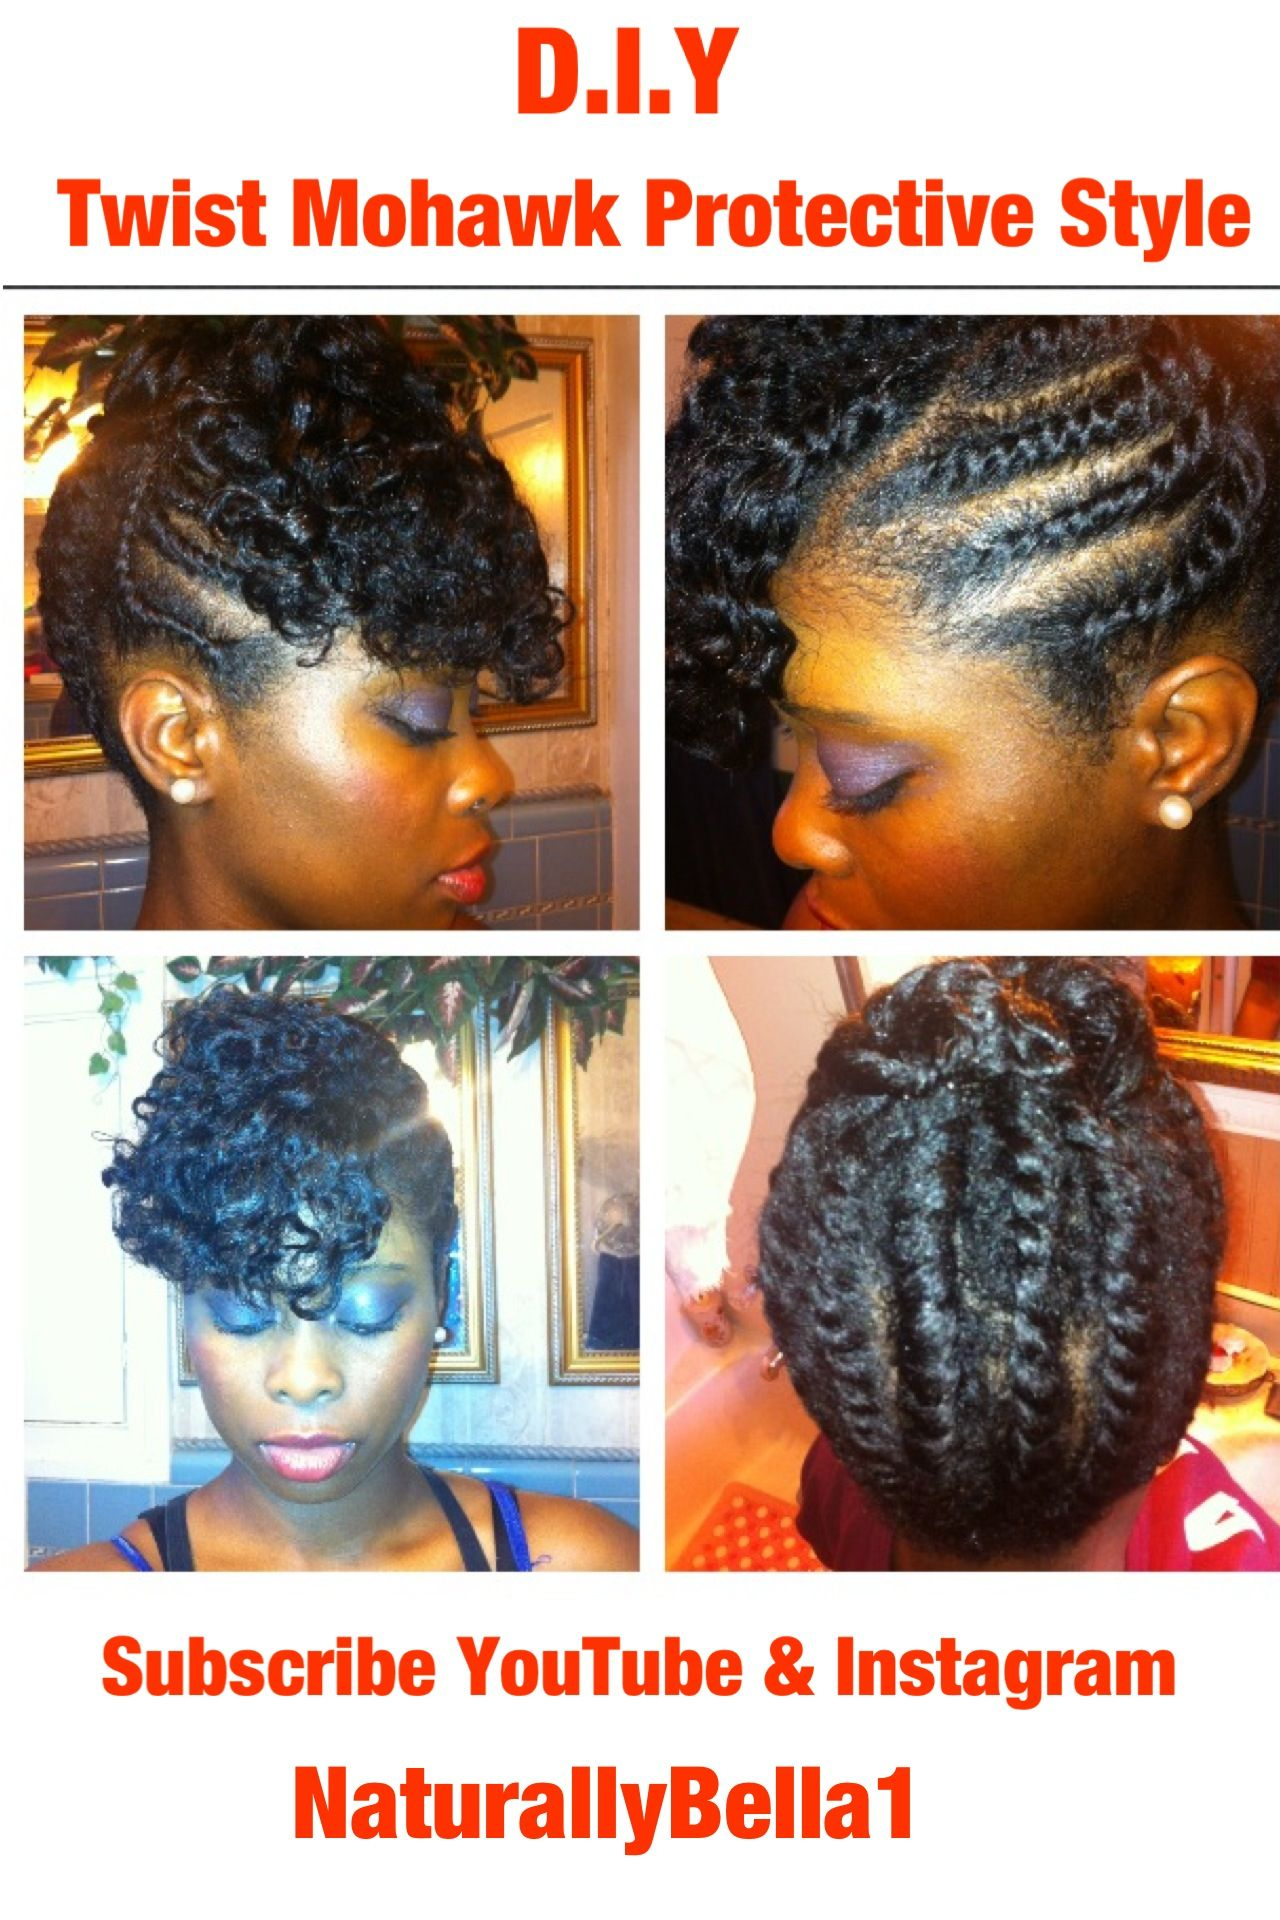 Diy twist mohawk protective style for natural u transitioning hair